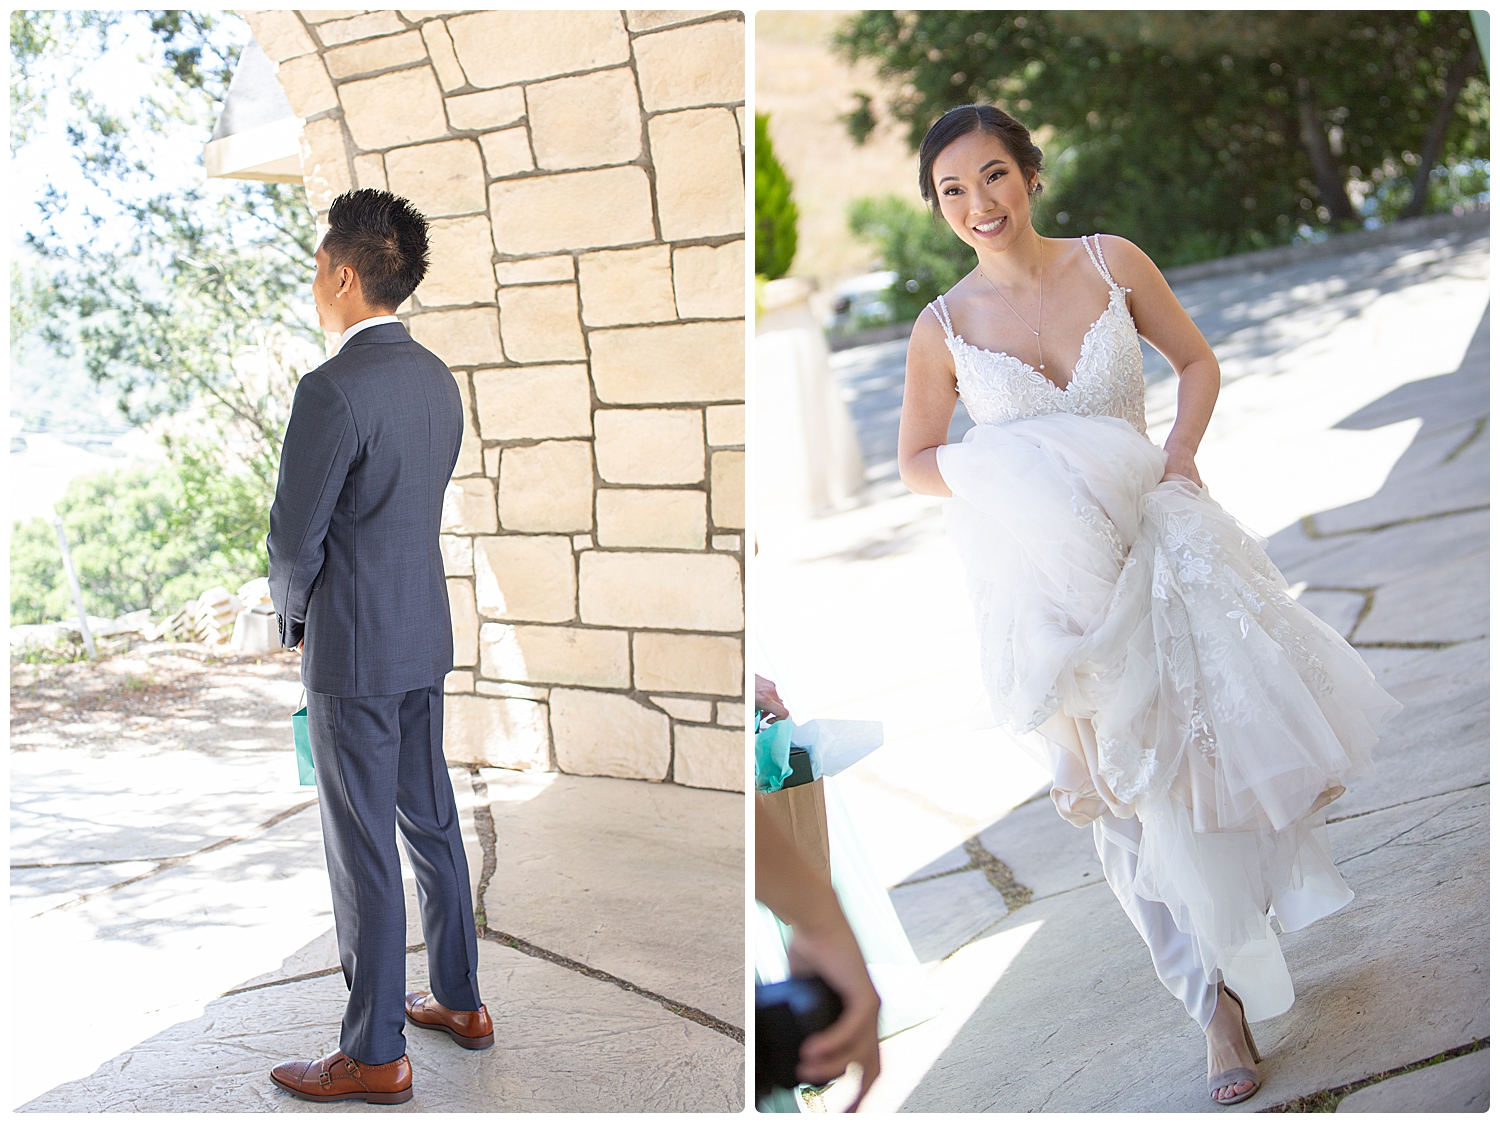 Megan+Froi wedding 050419_Renoda Campbell Photography-46.jpg